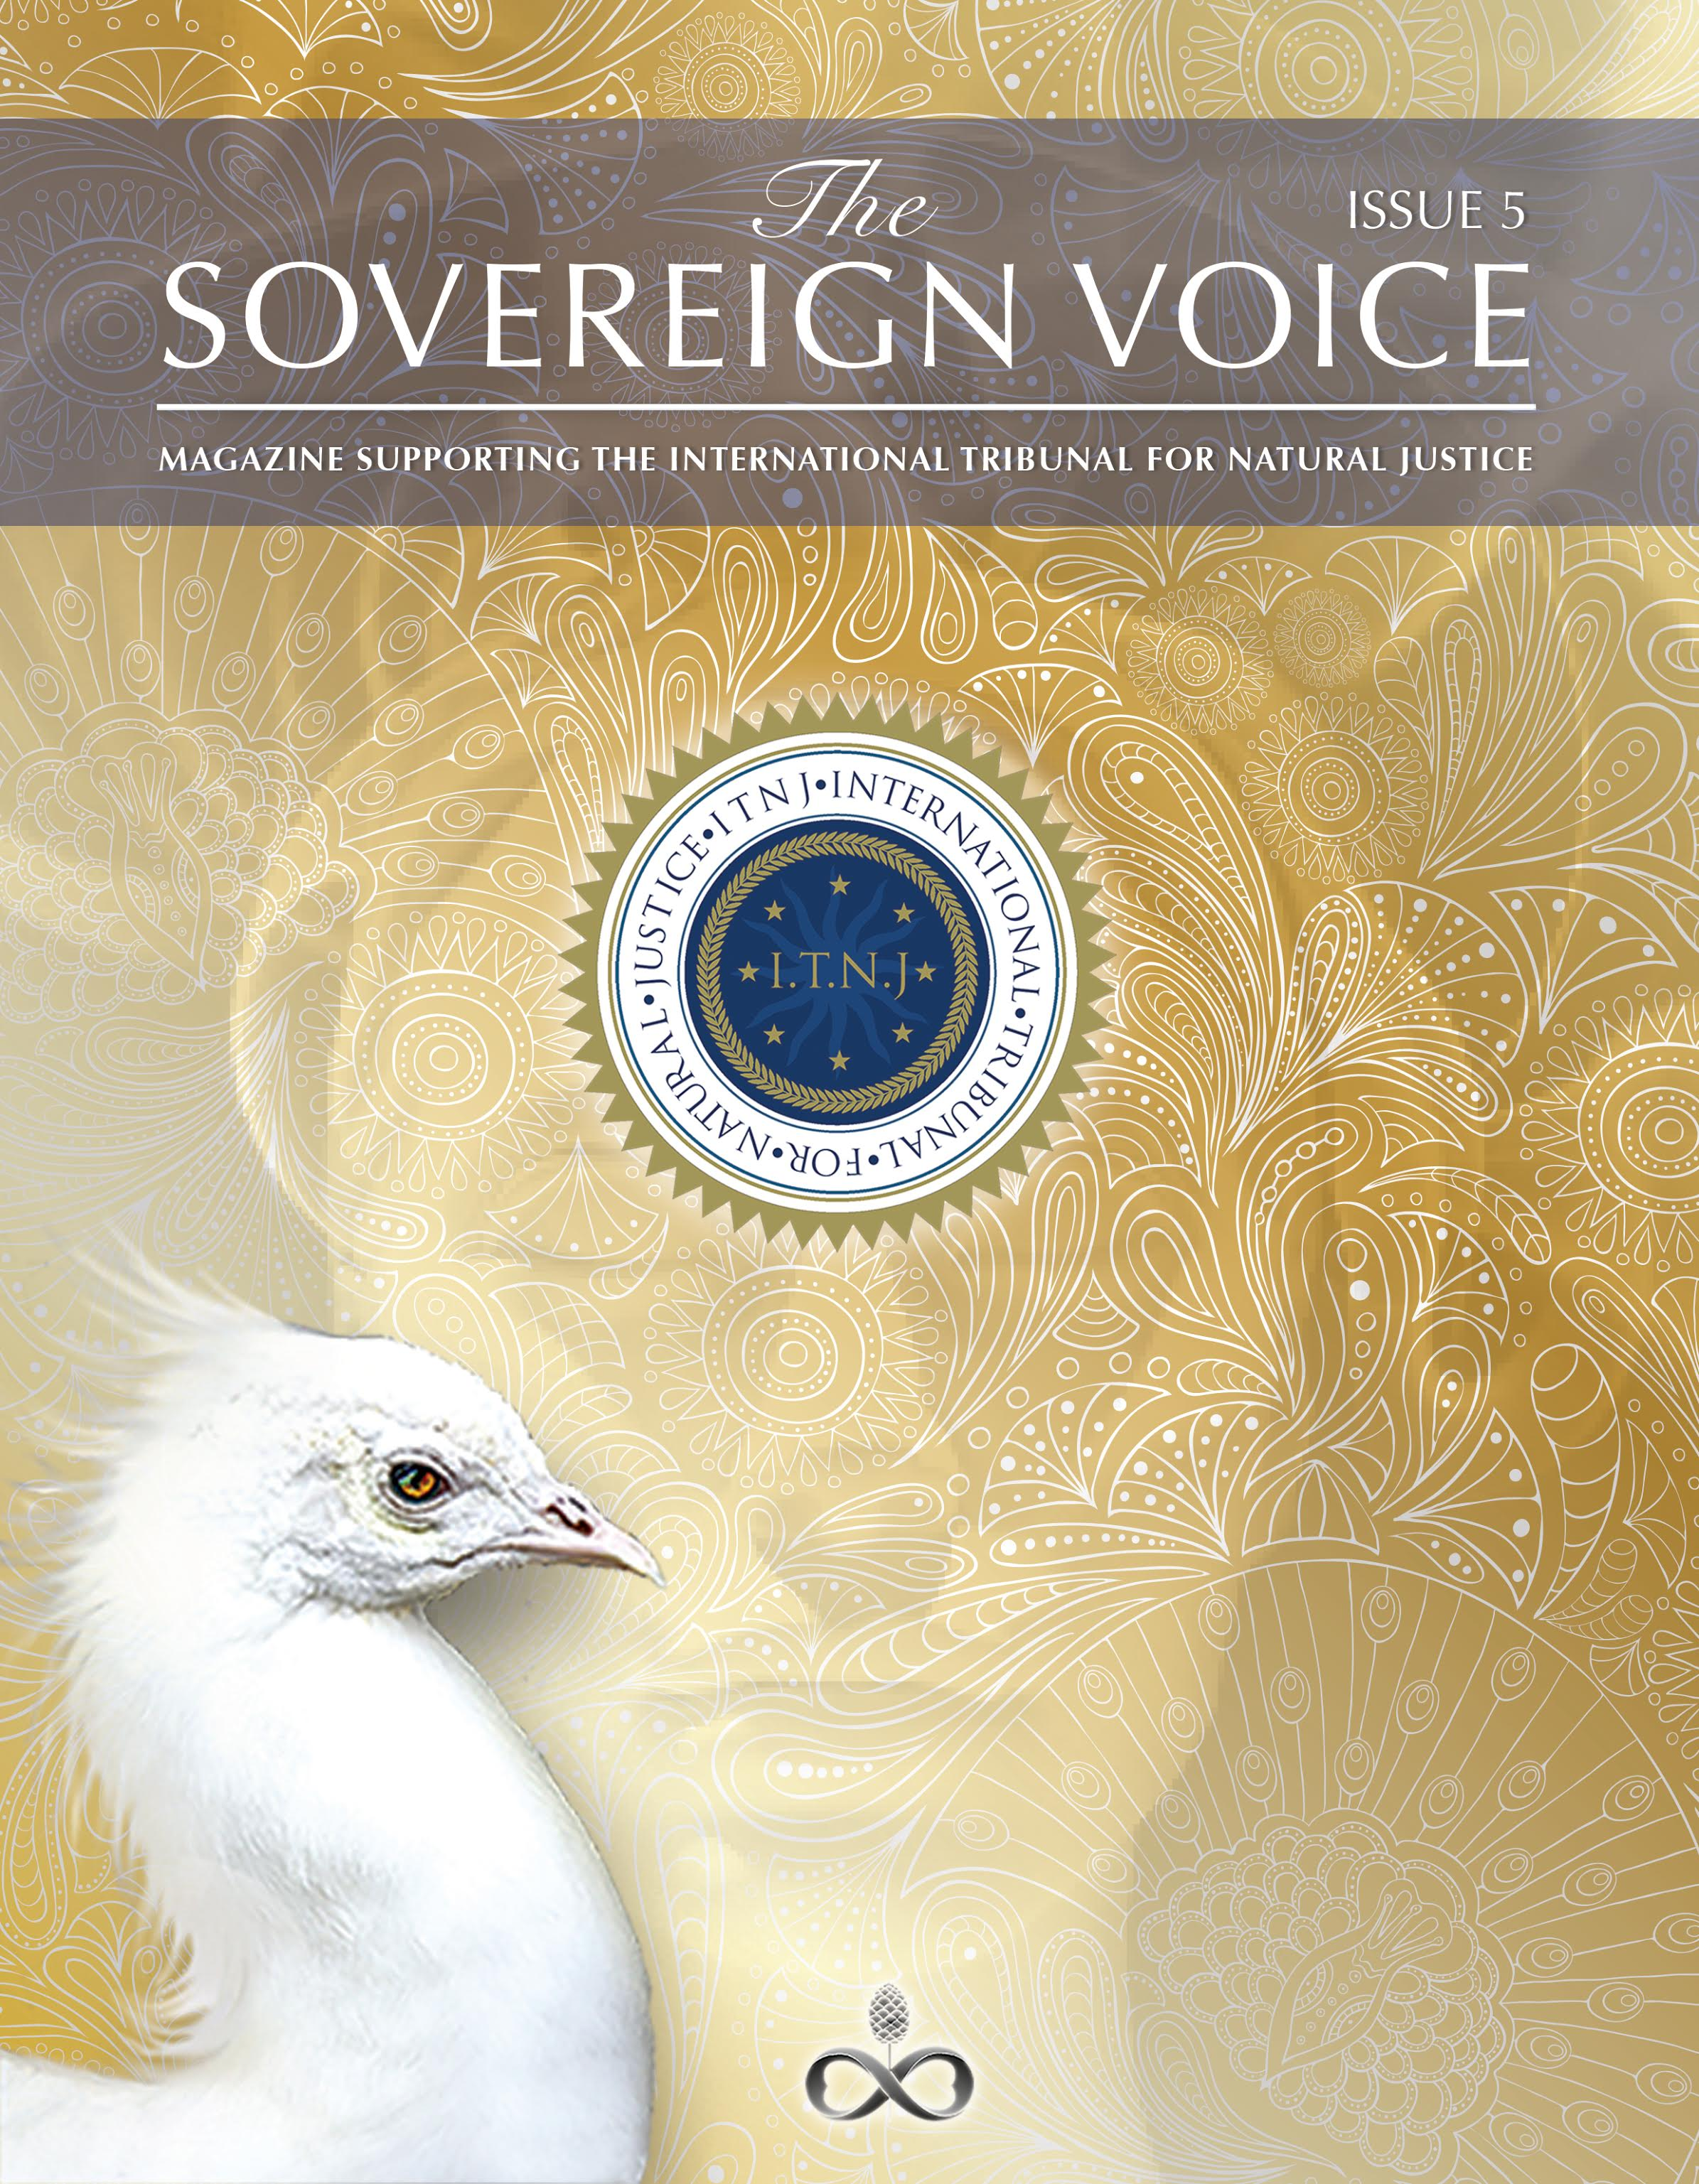 newearth magazines / the sovereign voice – issue 5